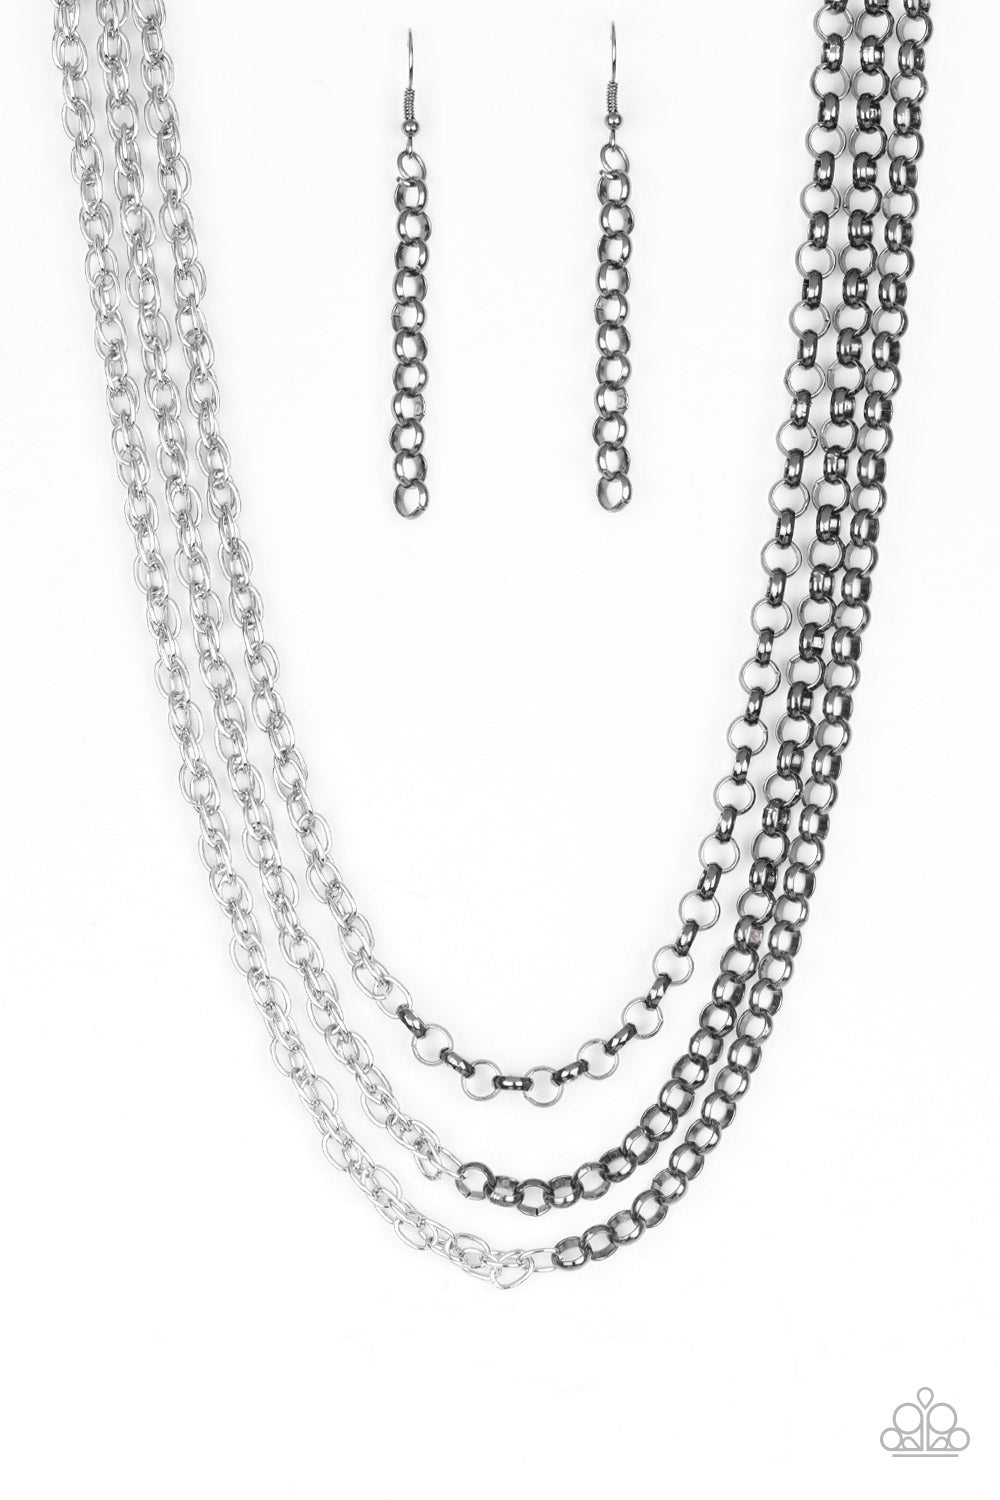 Paparazzi Accessories - Paparazzi | Metro Madness | Silver/Gunmetal Necklace and Earring Set - Necklaces